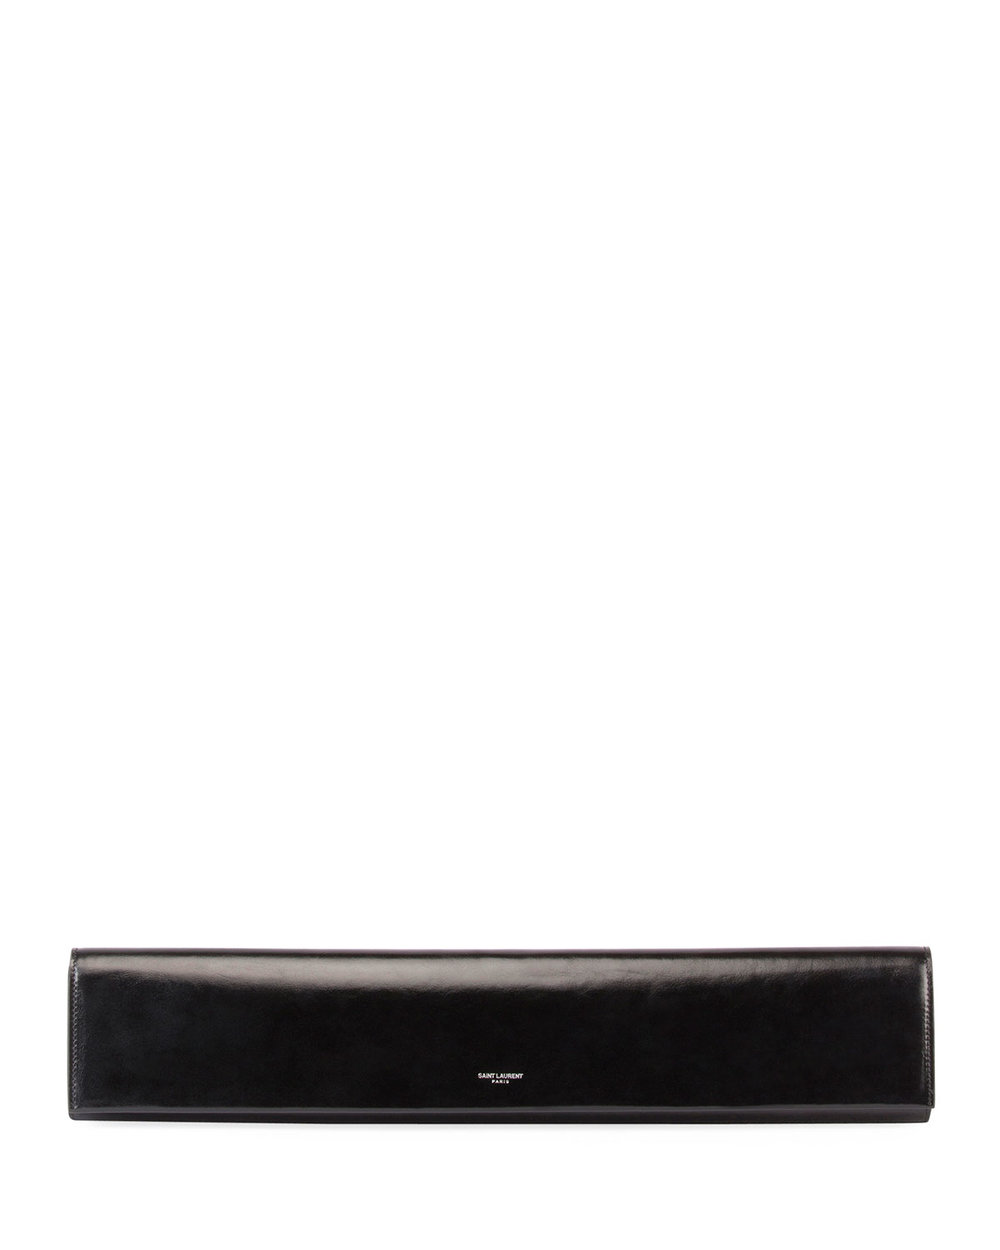 Saint Laurent Fetiche Exaggerated East-West Leather Clutch Bag. Neiman Marcus. $1,550.